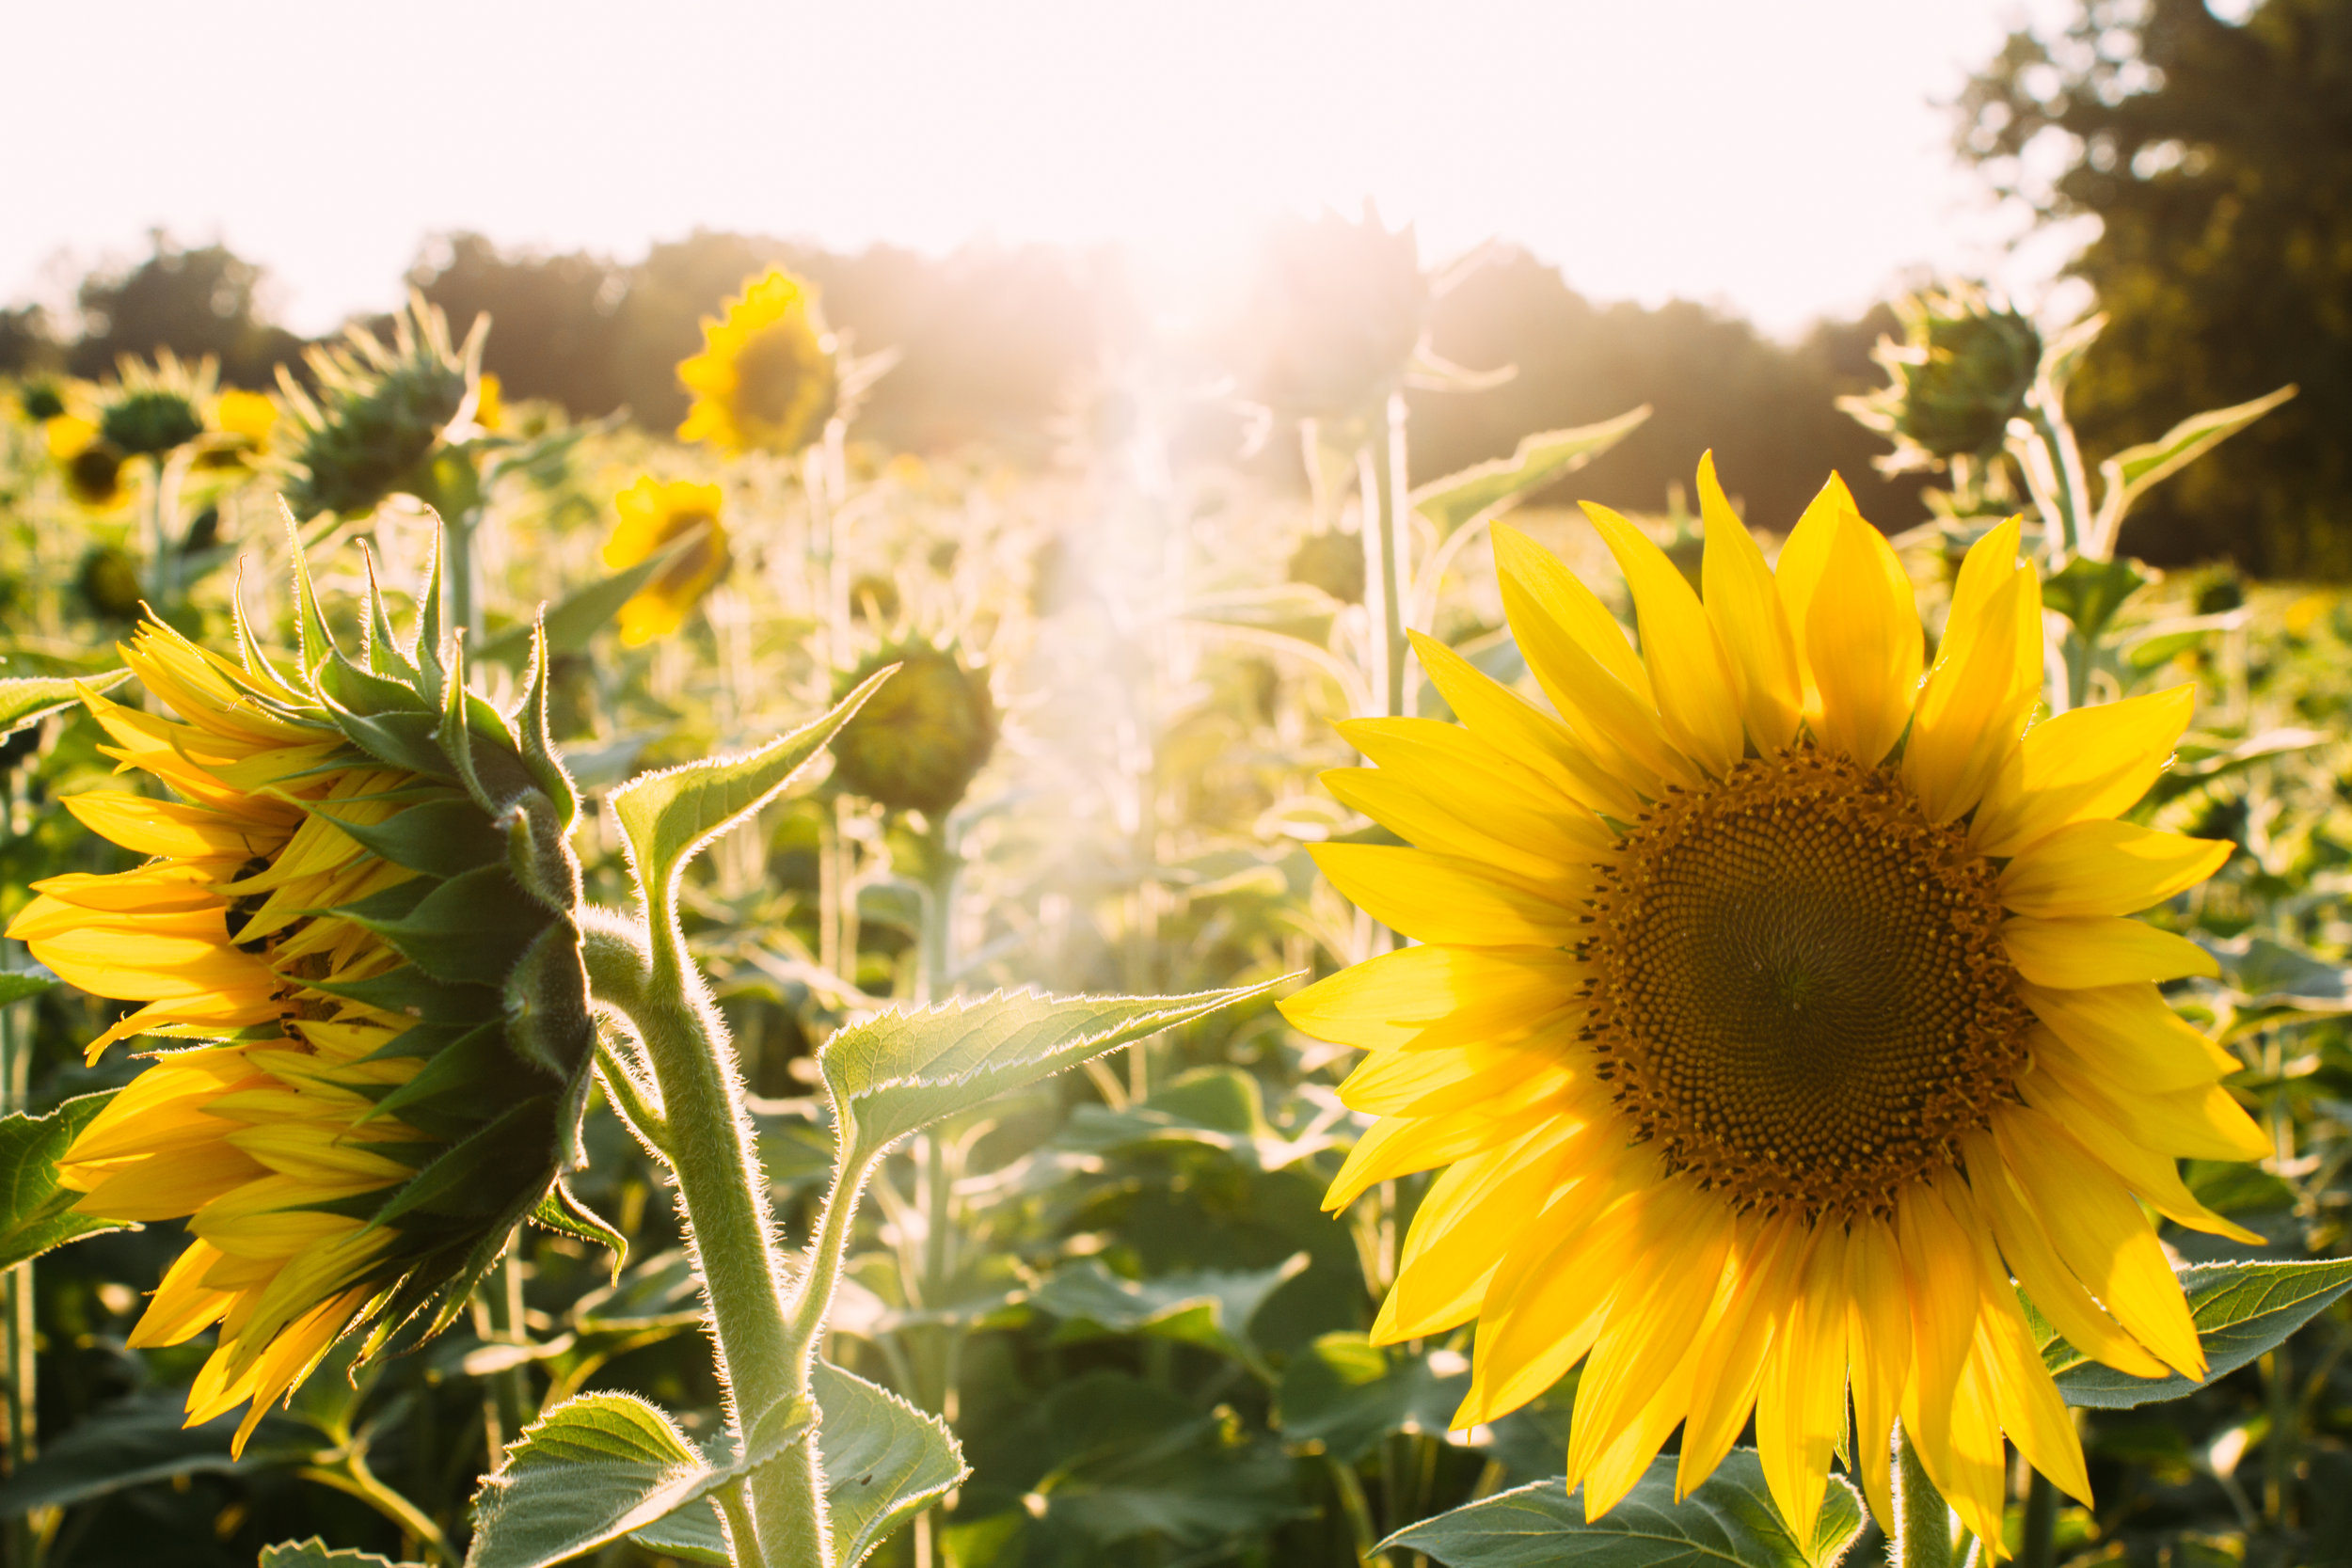 Organic Sunflower Oil - for its ability to draw out dirt and impurities from the skin. Rich in vitamin E, omega 3 and 6 and beta-carotene, helps to neutralize free radicals which can damage the skin and lead to premature aging.